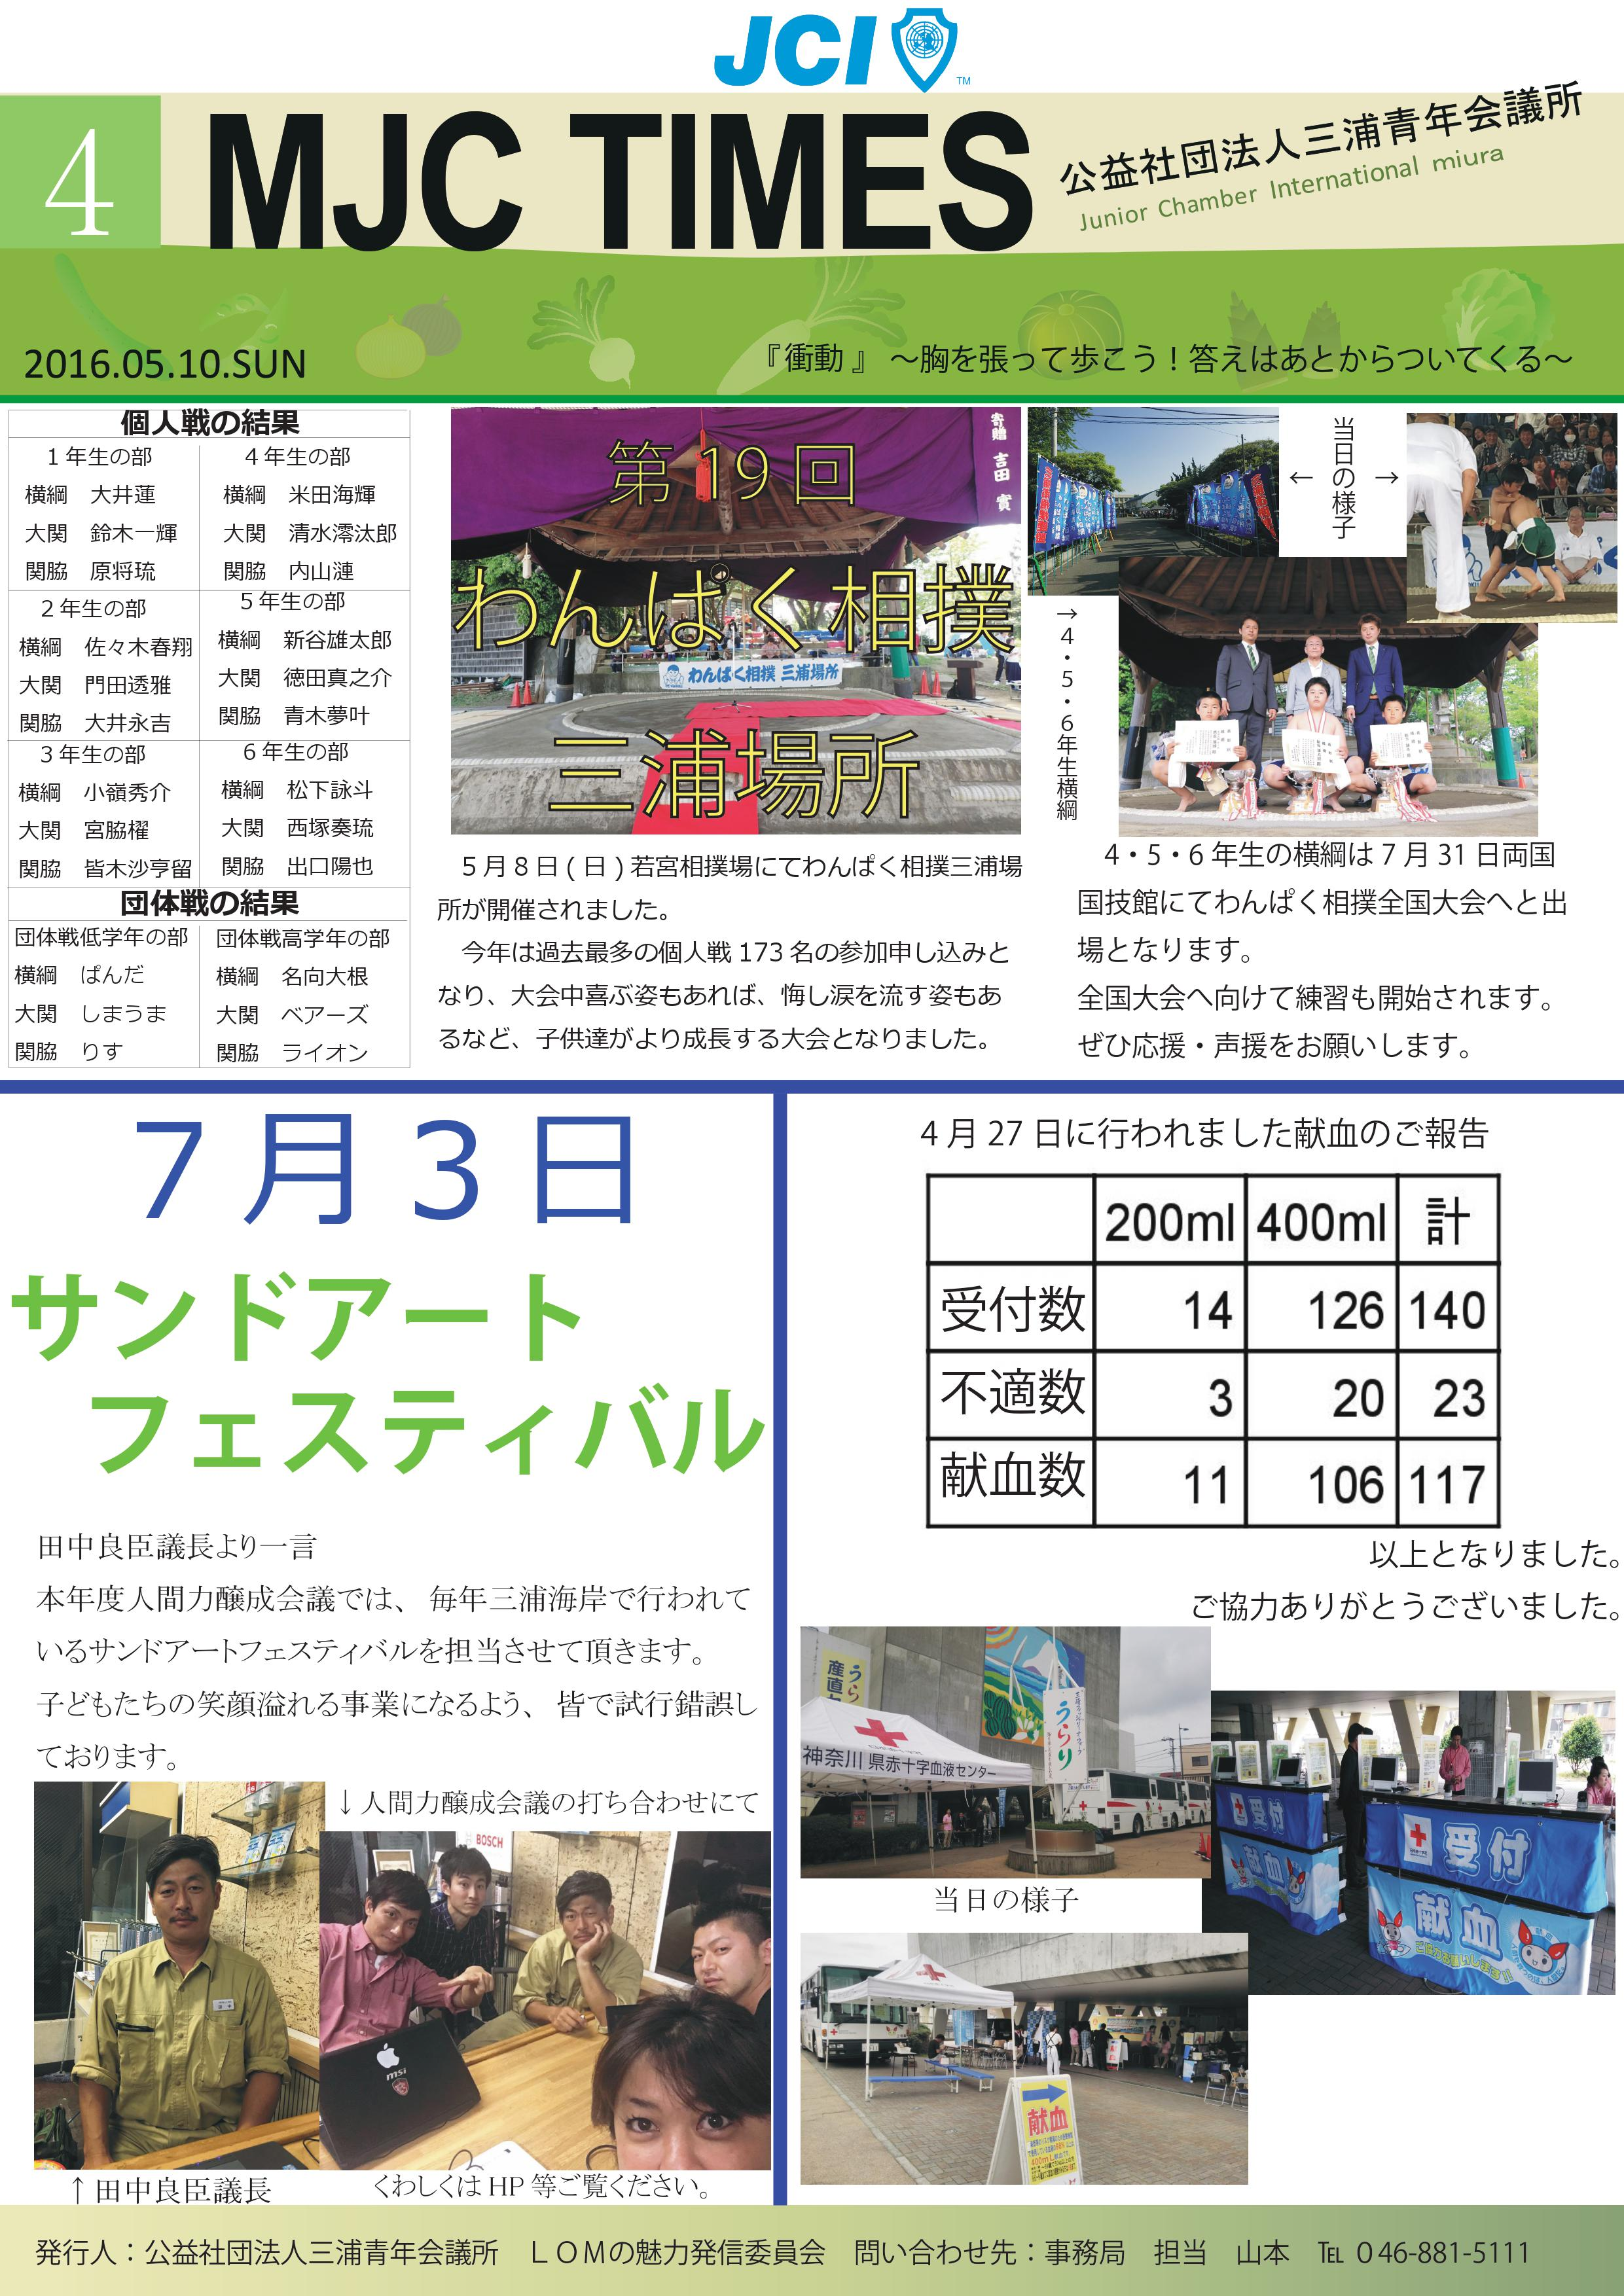 THE MJC TIMES 4月号